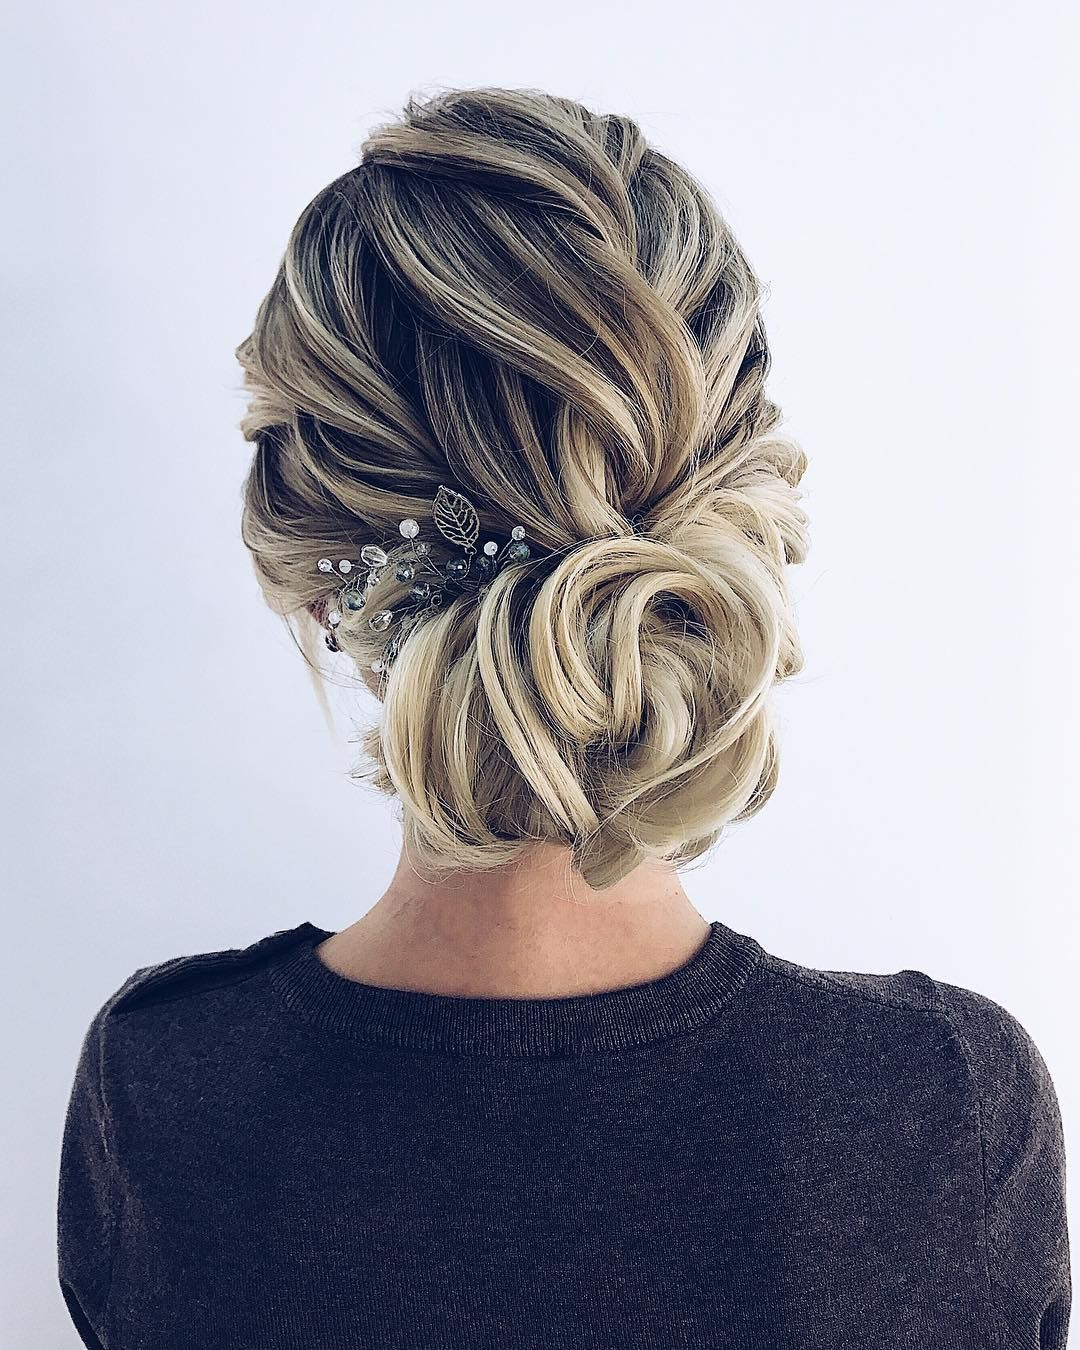 Textured wedding updo hairstyle ,messy updo wedding hairstyles ,chignon ,swept back wedding hairstyles, messy updo hairstyles ,bridal updo #wedding #weddinghair #weddinghairstyles #hairstyles #updo #promhairstyle